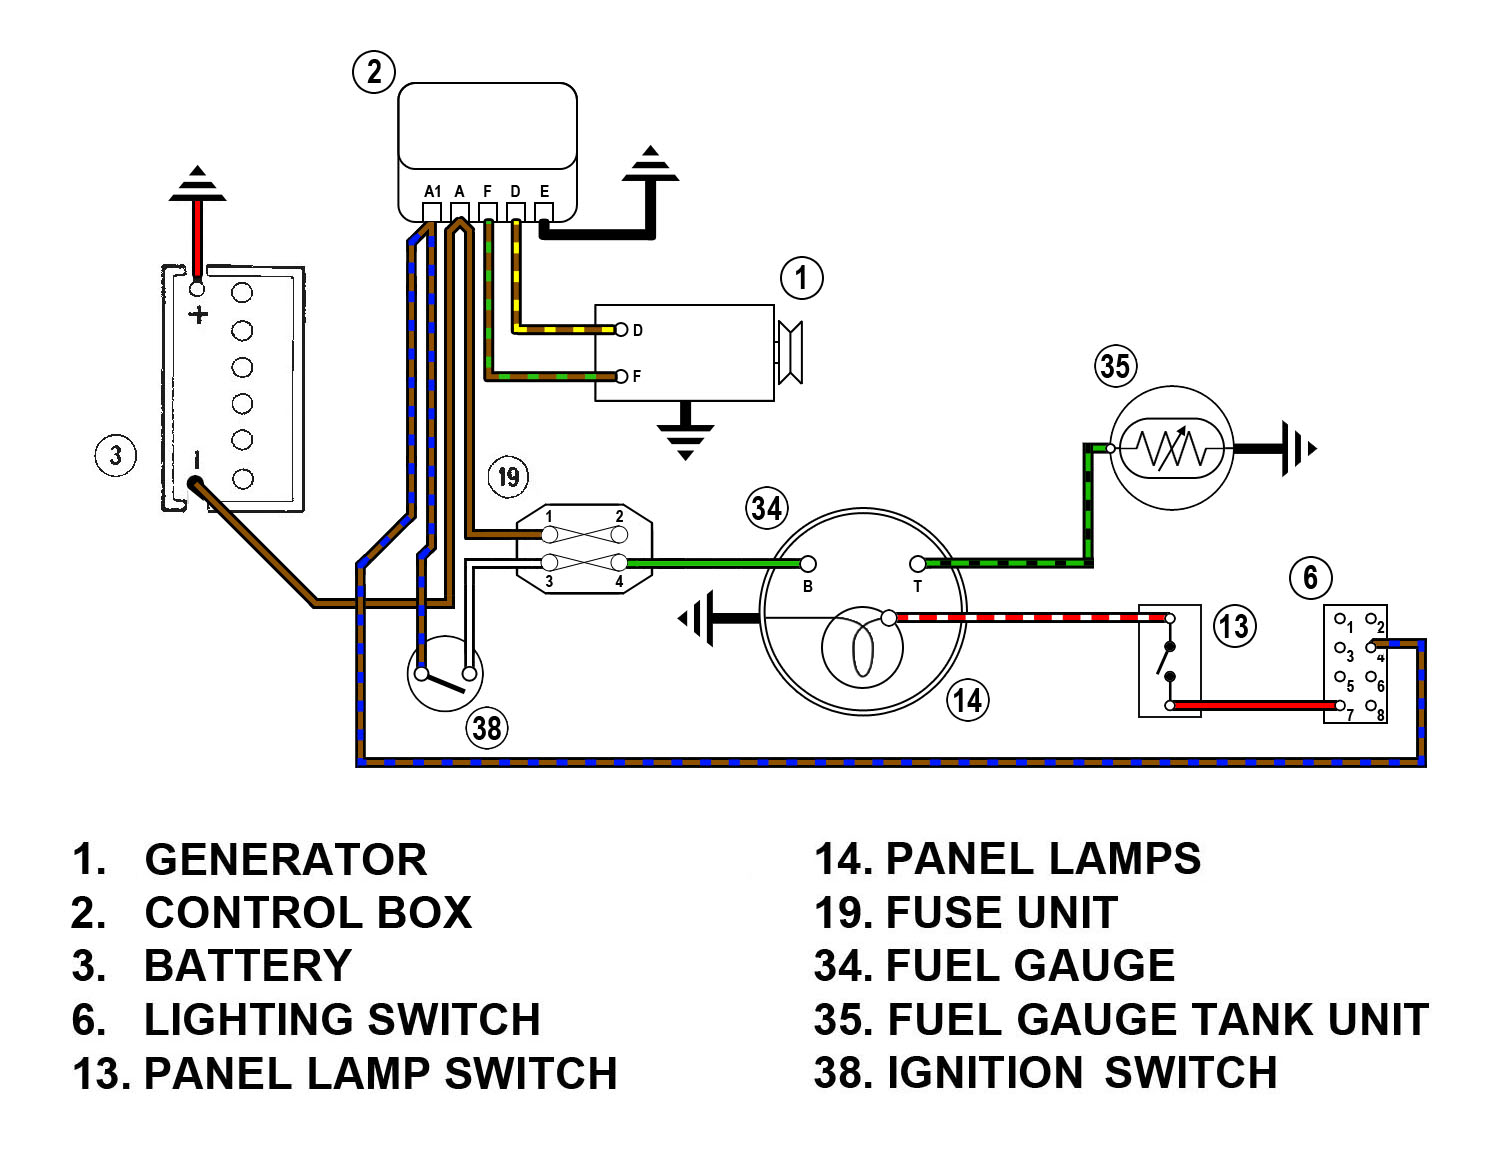 Fuel Gauge Wiring Diagram Free Download Wiring Diagram Schematic Digital Fuel  Pressure Gauge Kit Digital Circuit Diagrams